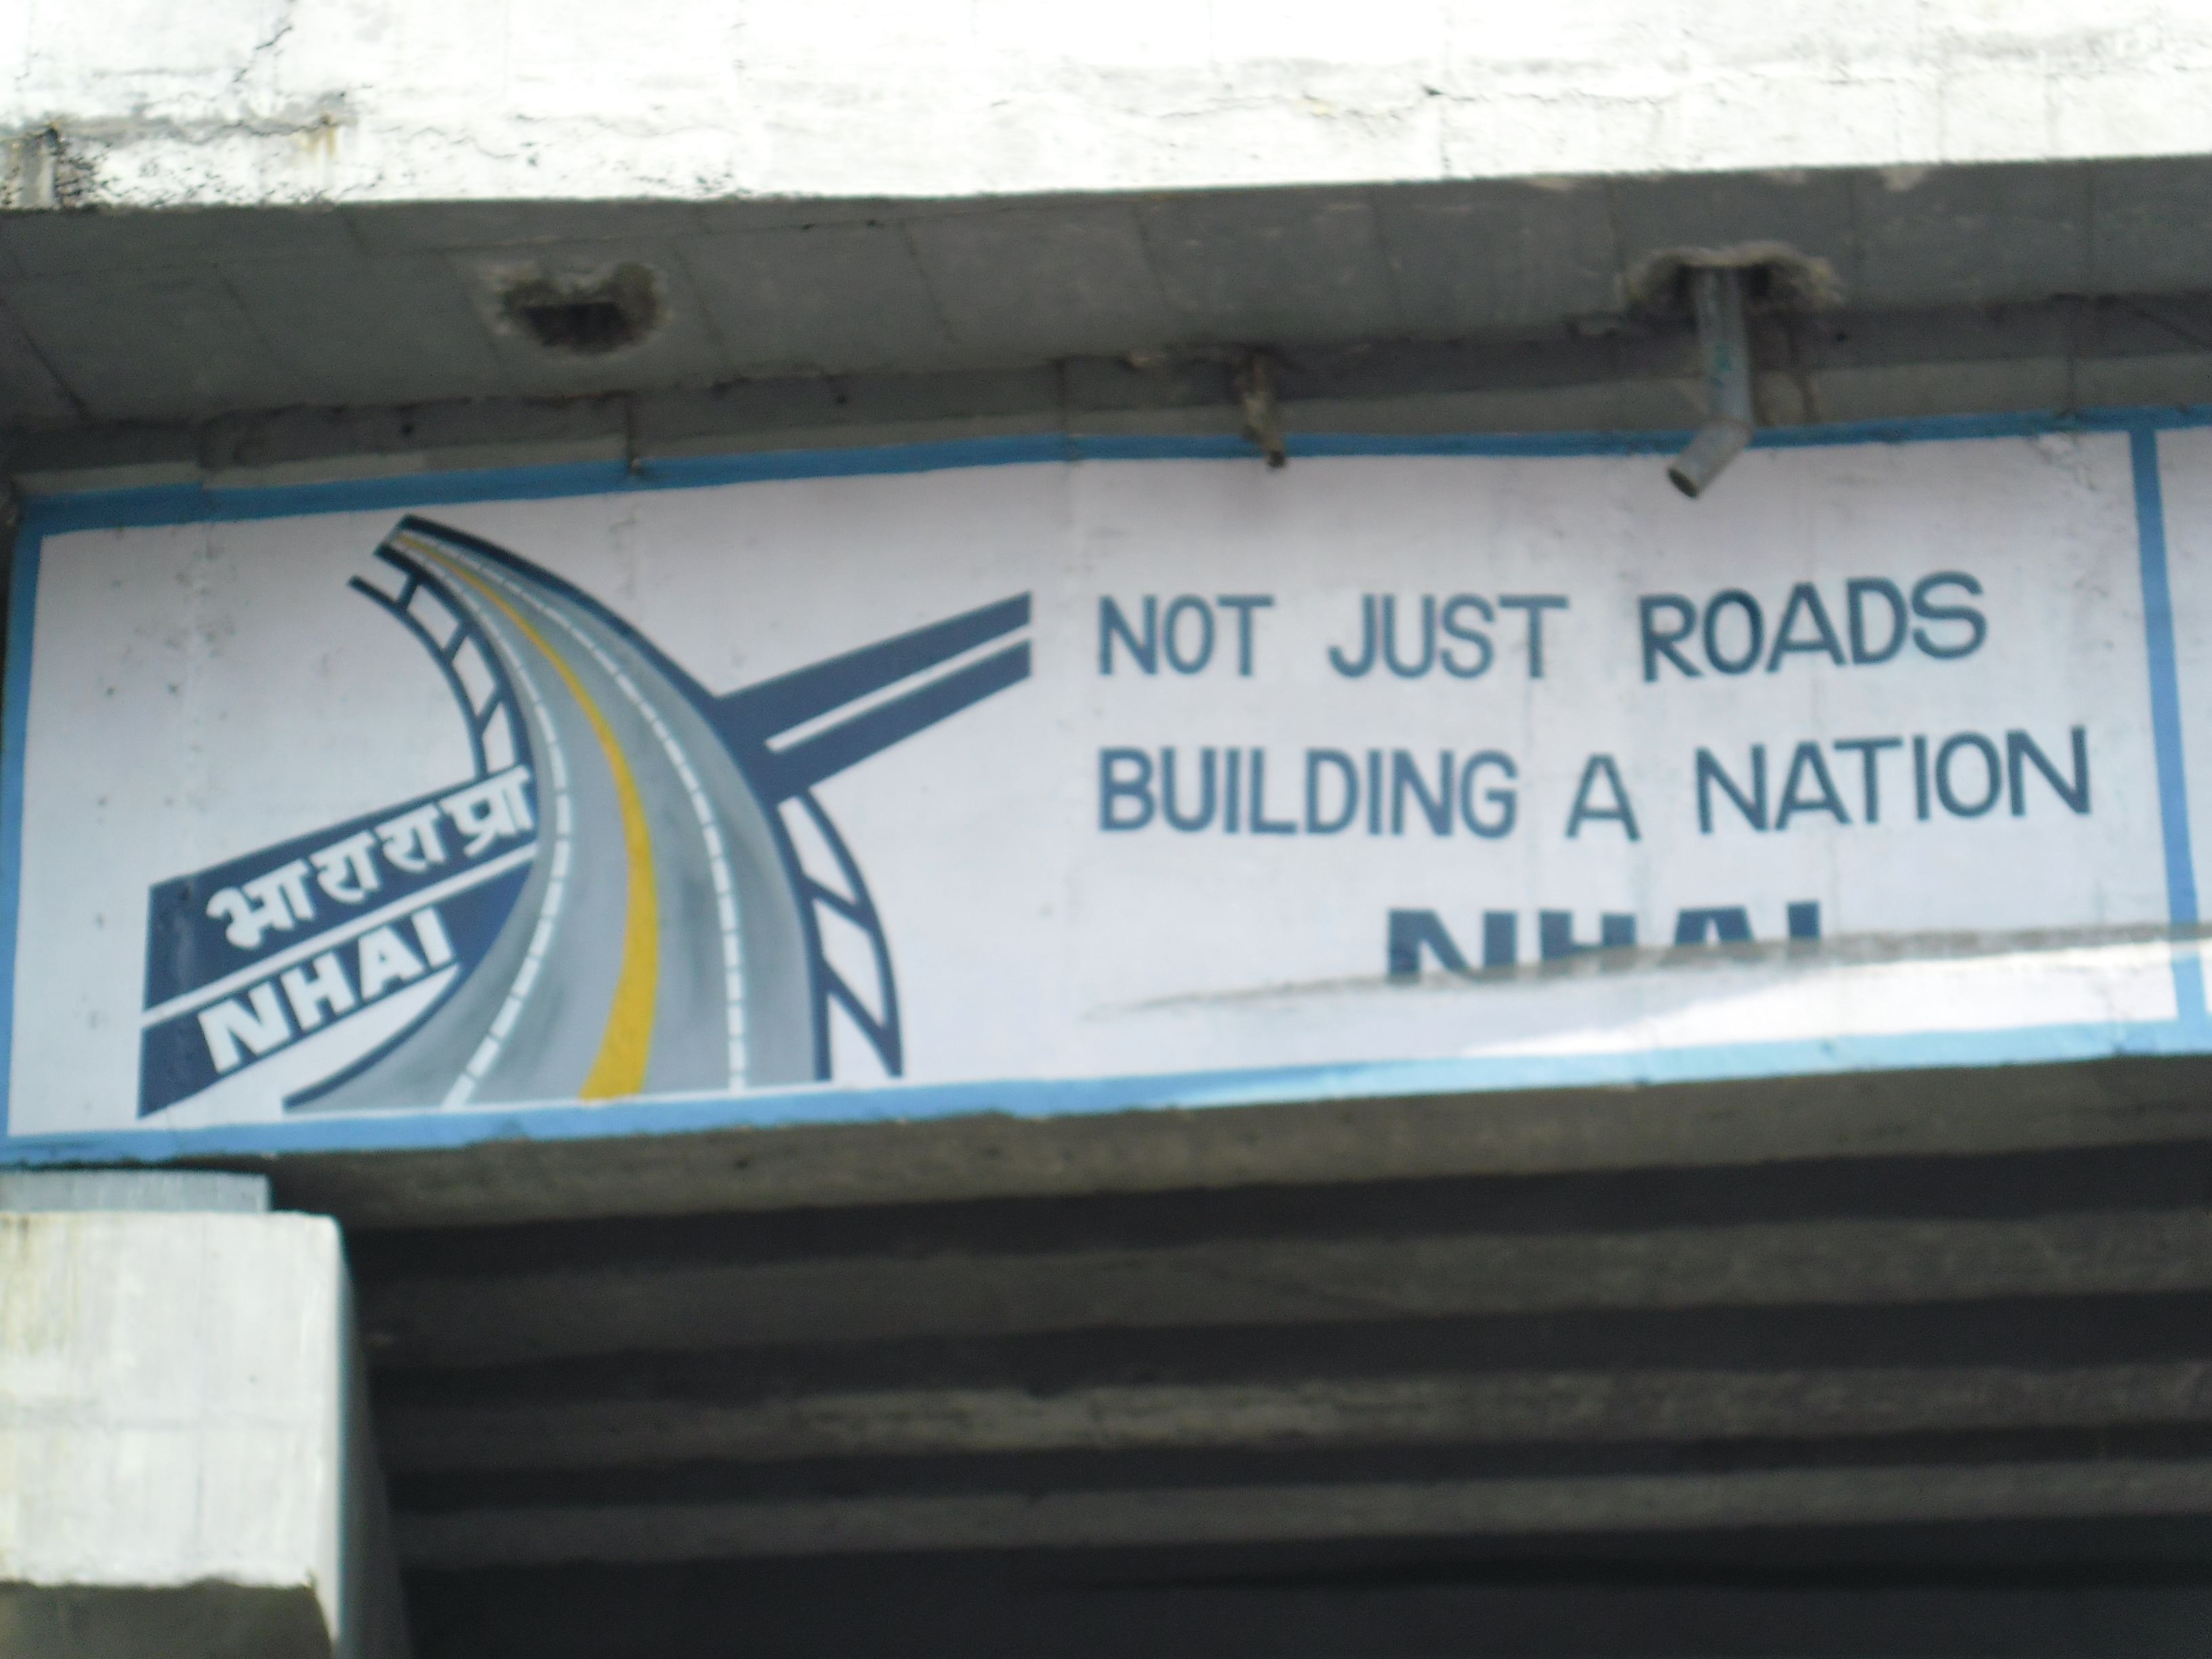 National_highways_India